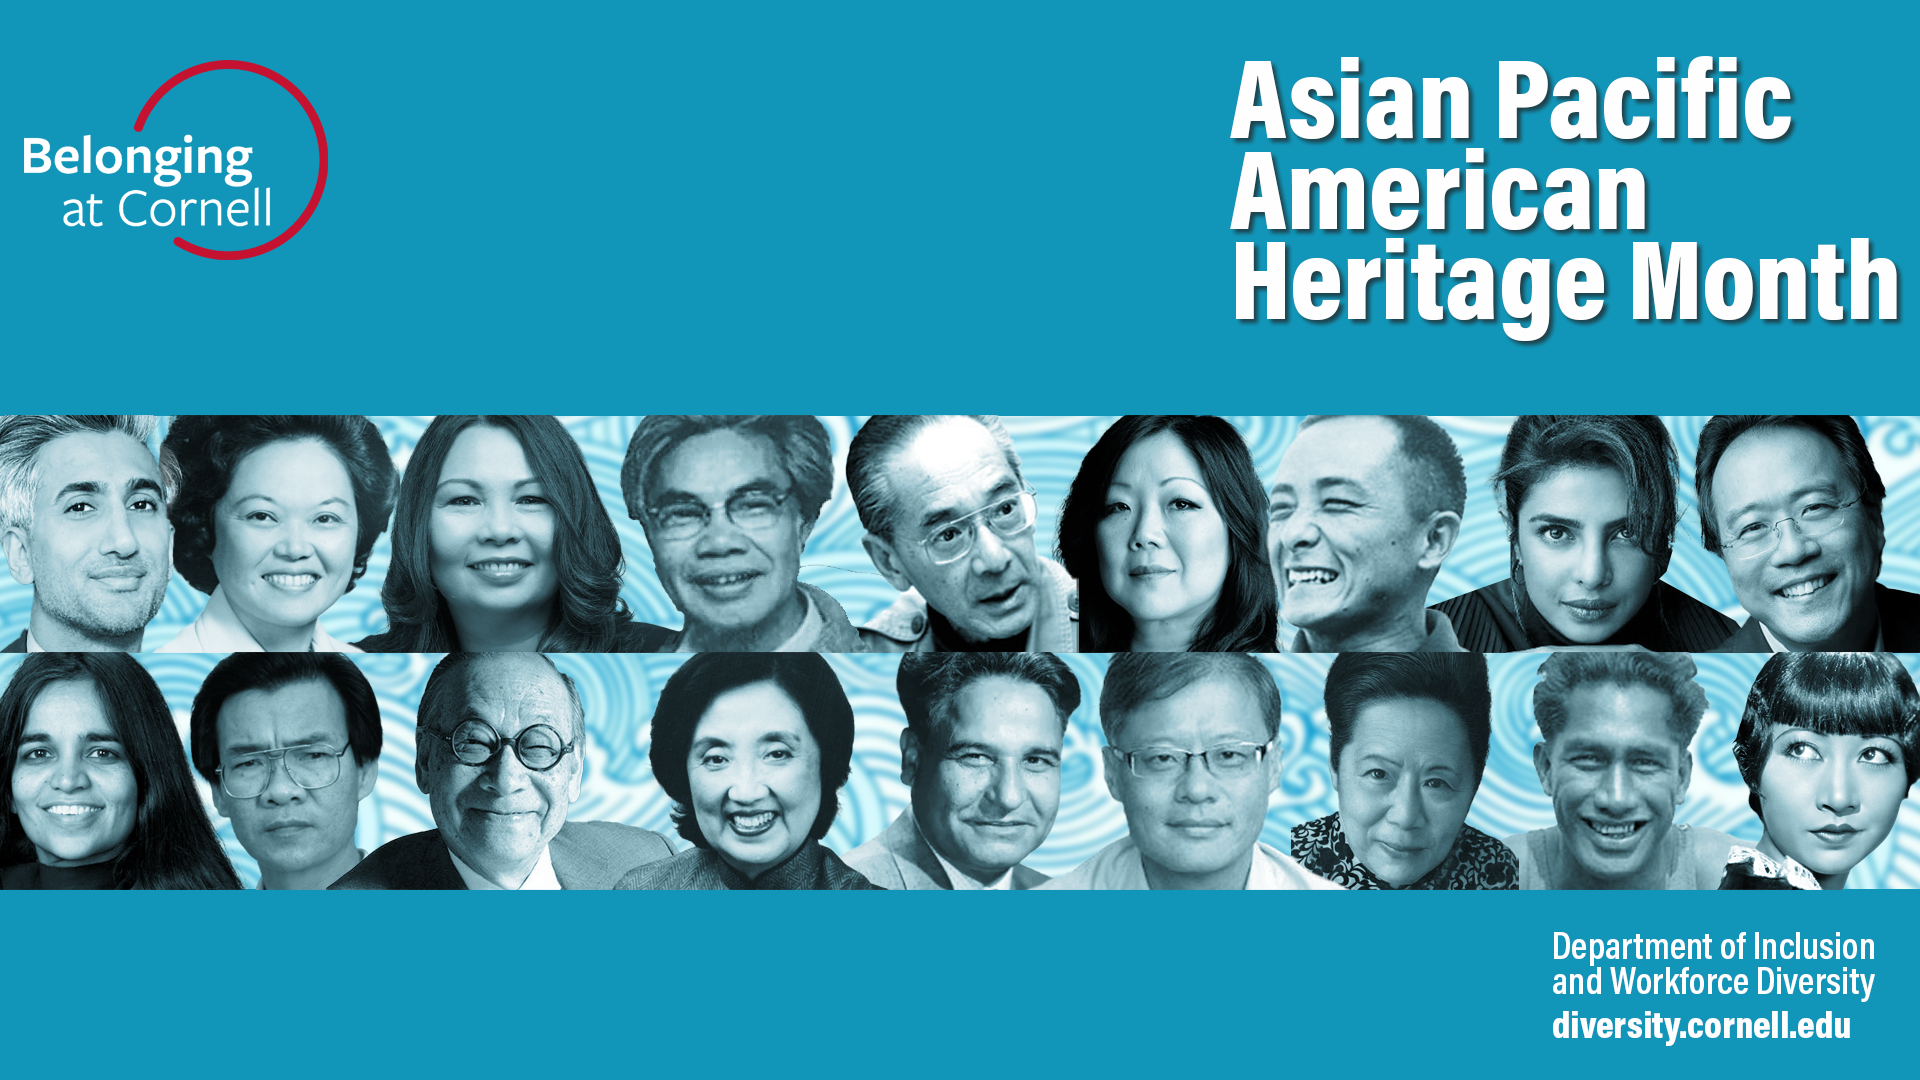 Zoom background (historical and cultural figures) visual in honor of American Pacific Heritage Month